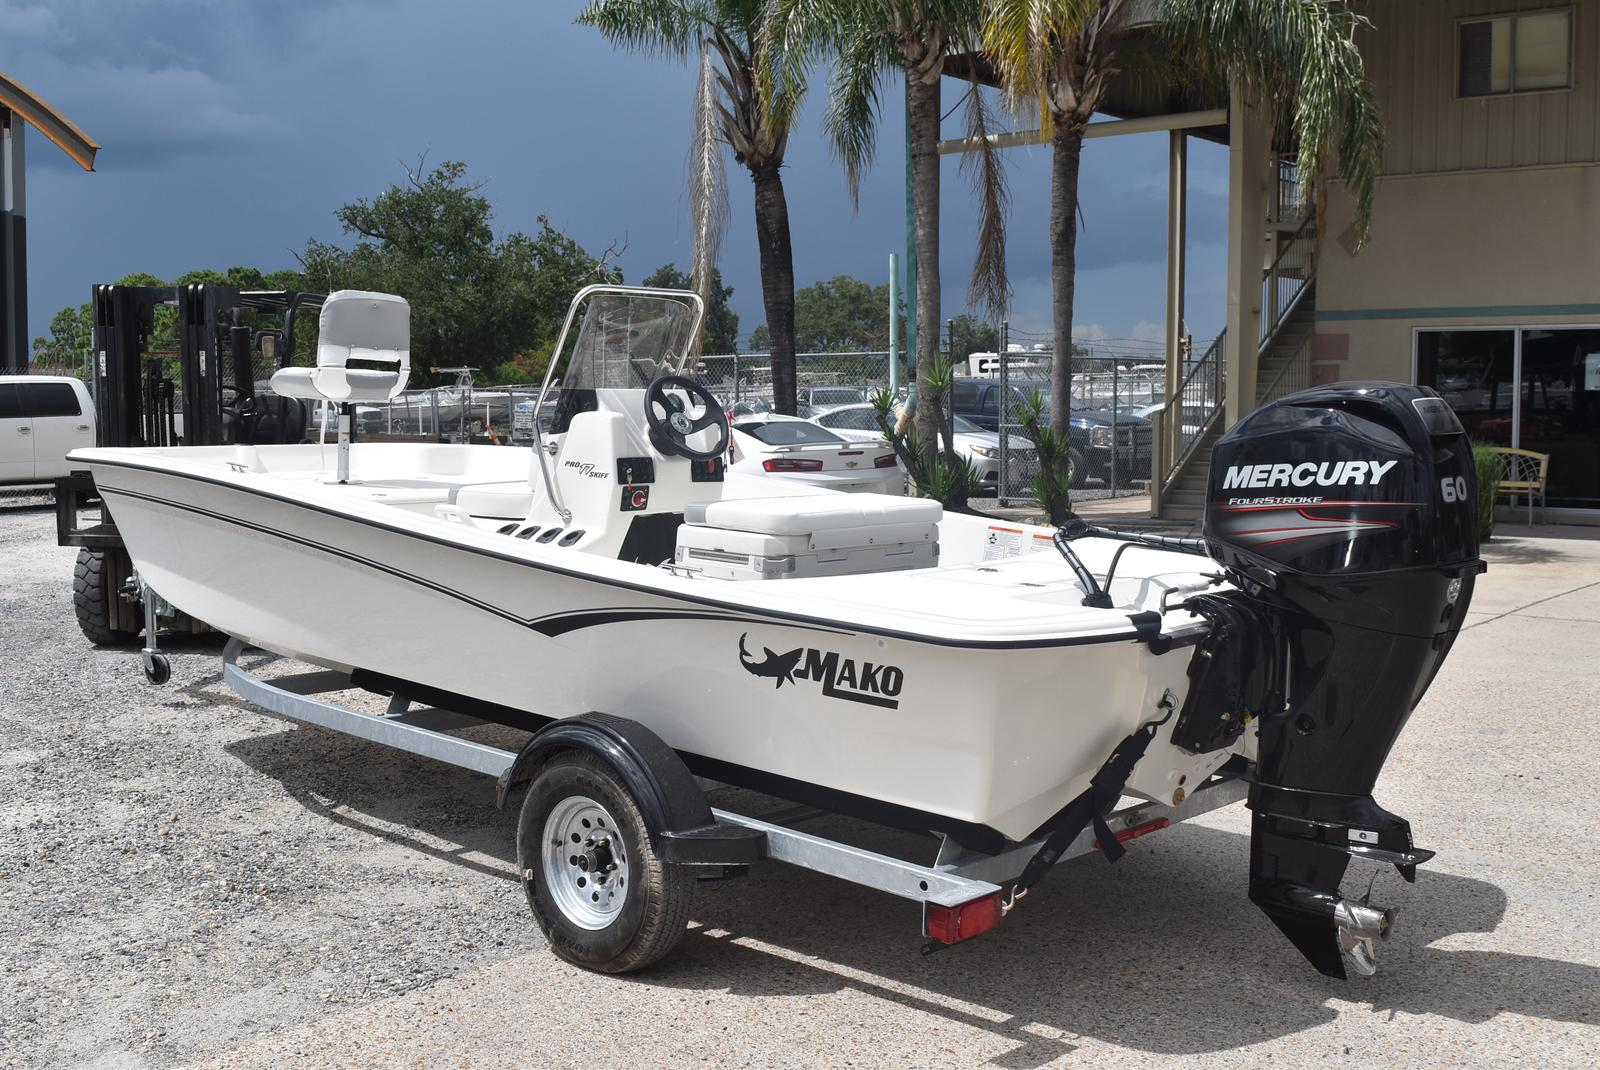 2020 Mako boat for sale, model of the boat is Pro Skiff 17, 75 ELPT & Image # 210 of 702